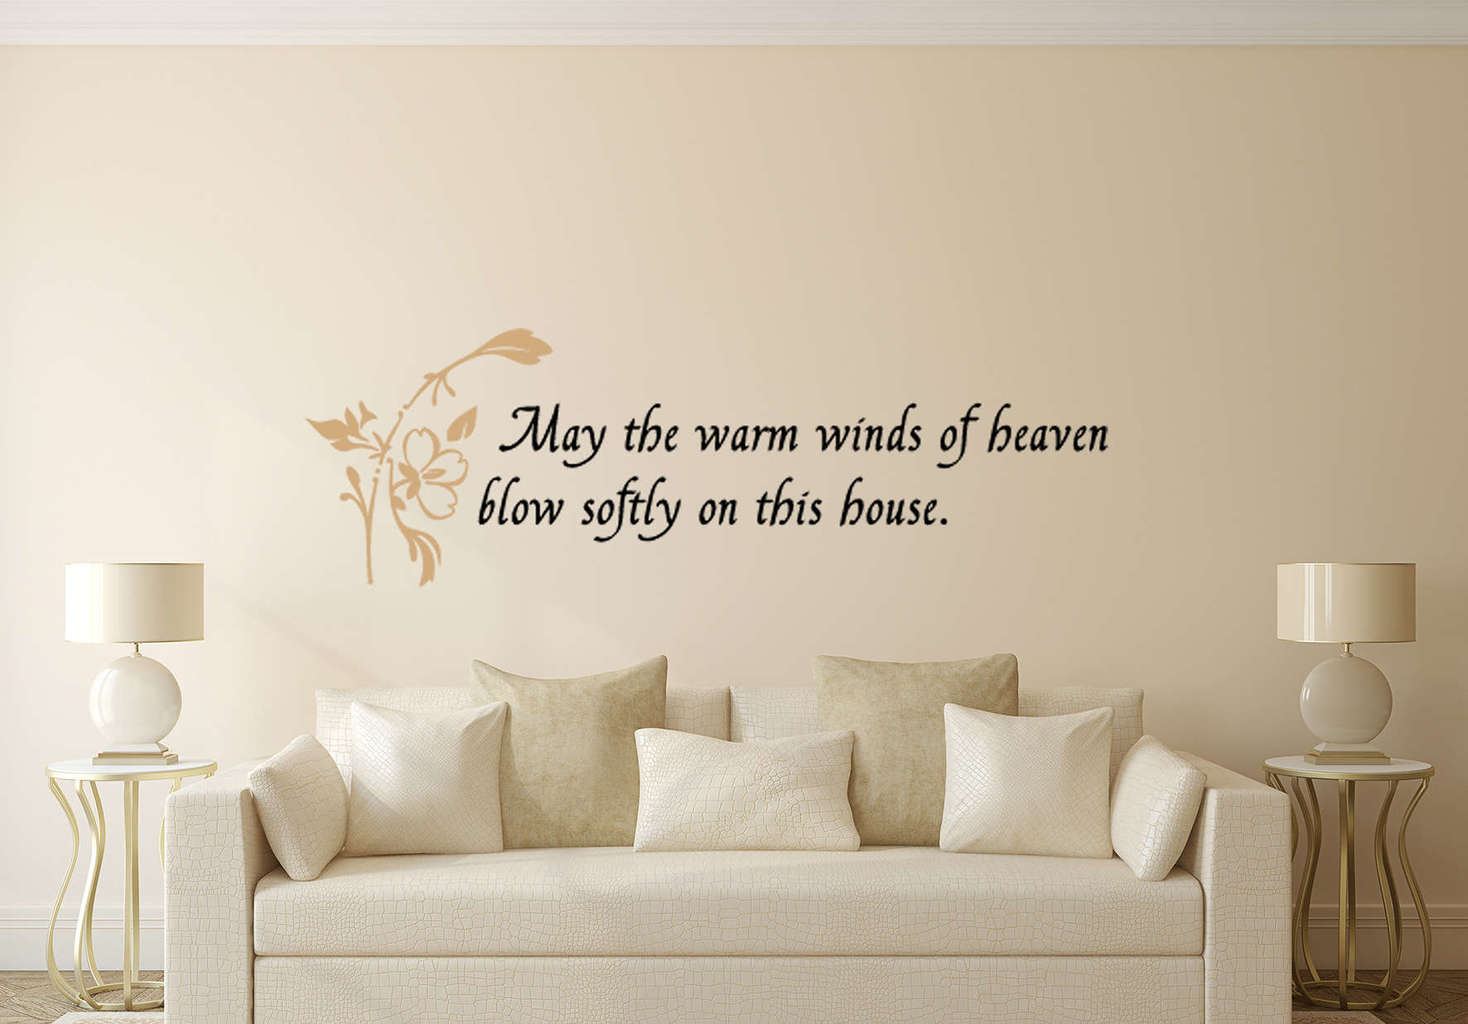 Warm Winds Of Heaven Wall Decal Sticker Part 23